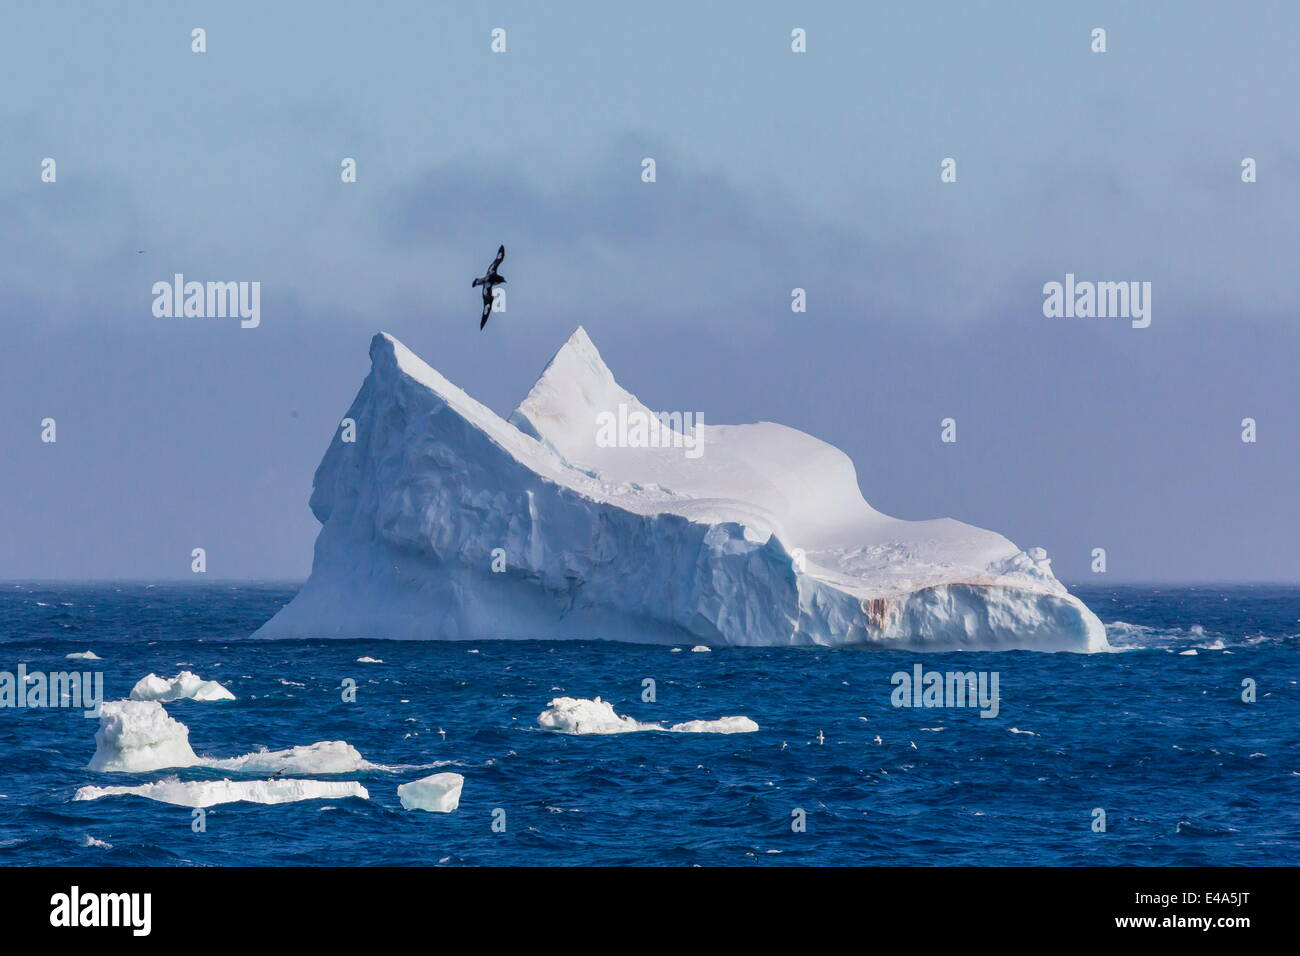 Cape petrel survolant iceberg près de l'île Coronation, îles Orcades du Sud, l'Antarctique, Photo Stock